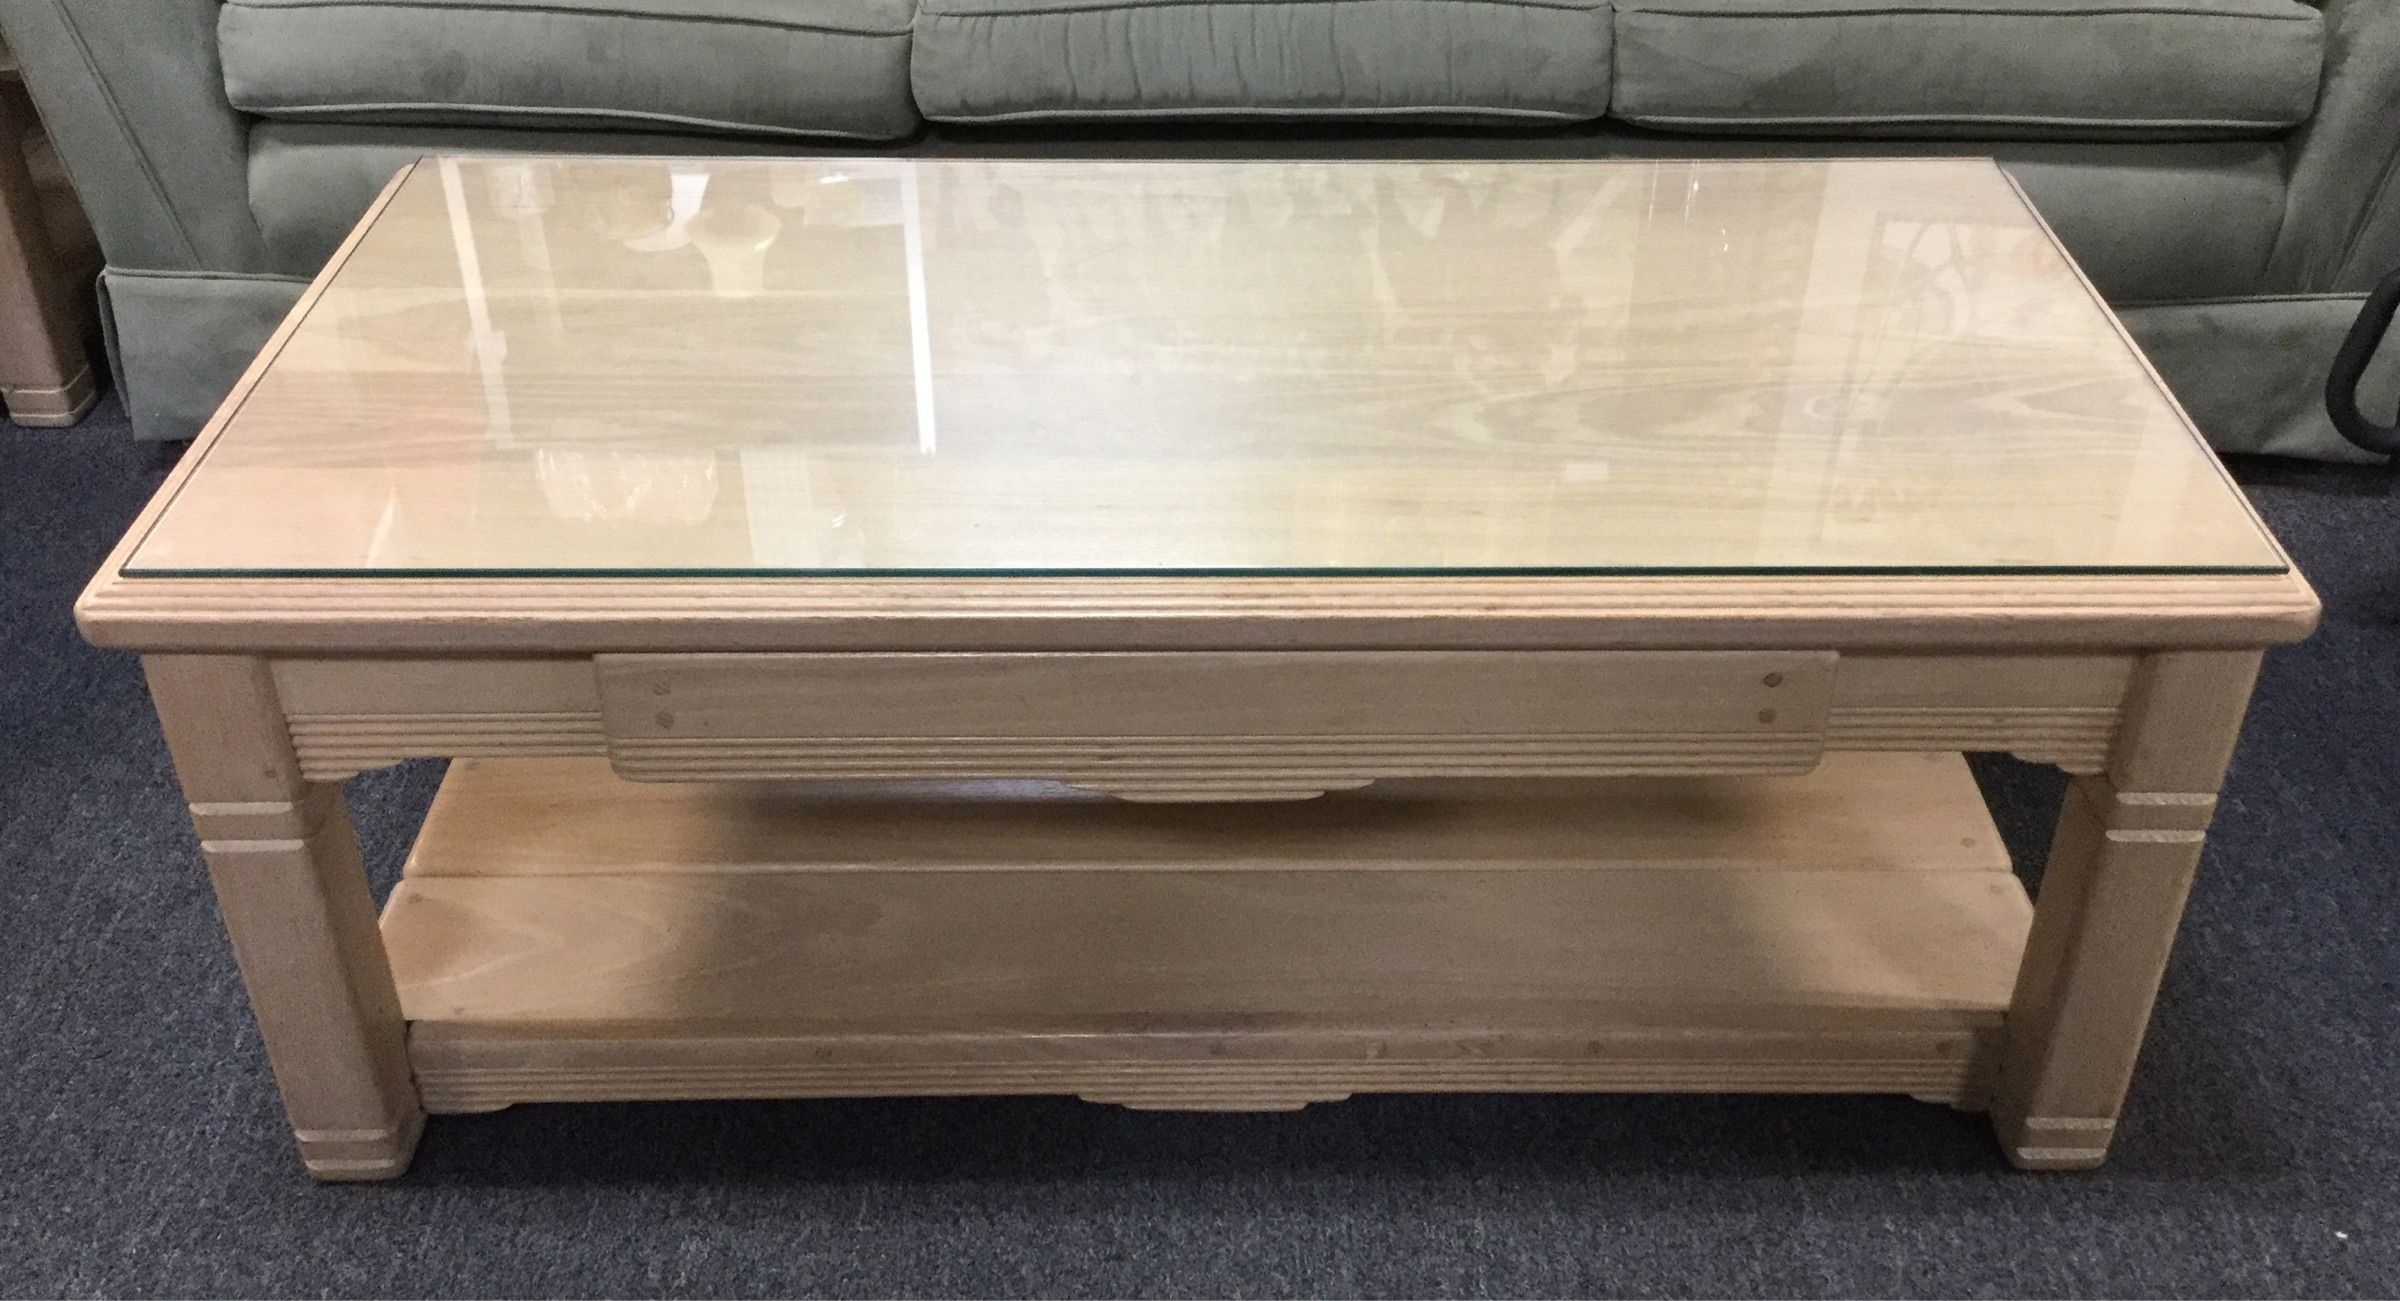 Light Stain Wood Coffee Table Coffee Table Wood Coffee Table Staining Wood [ 1301 x 2400 Pixel ]